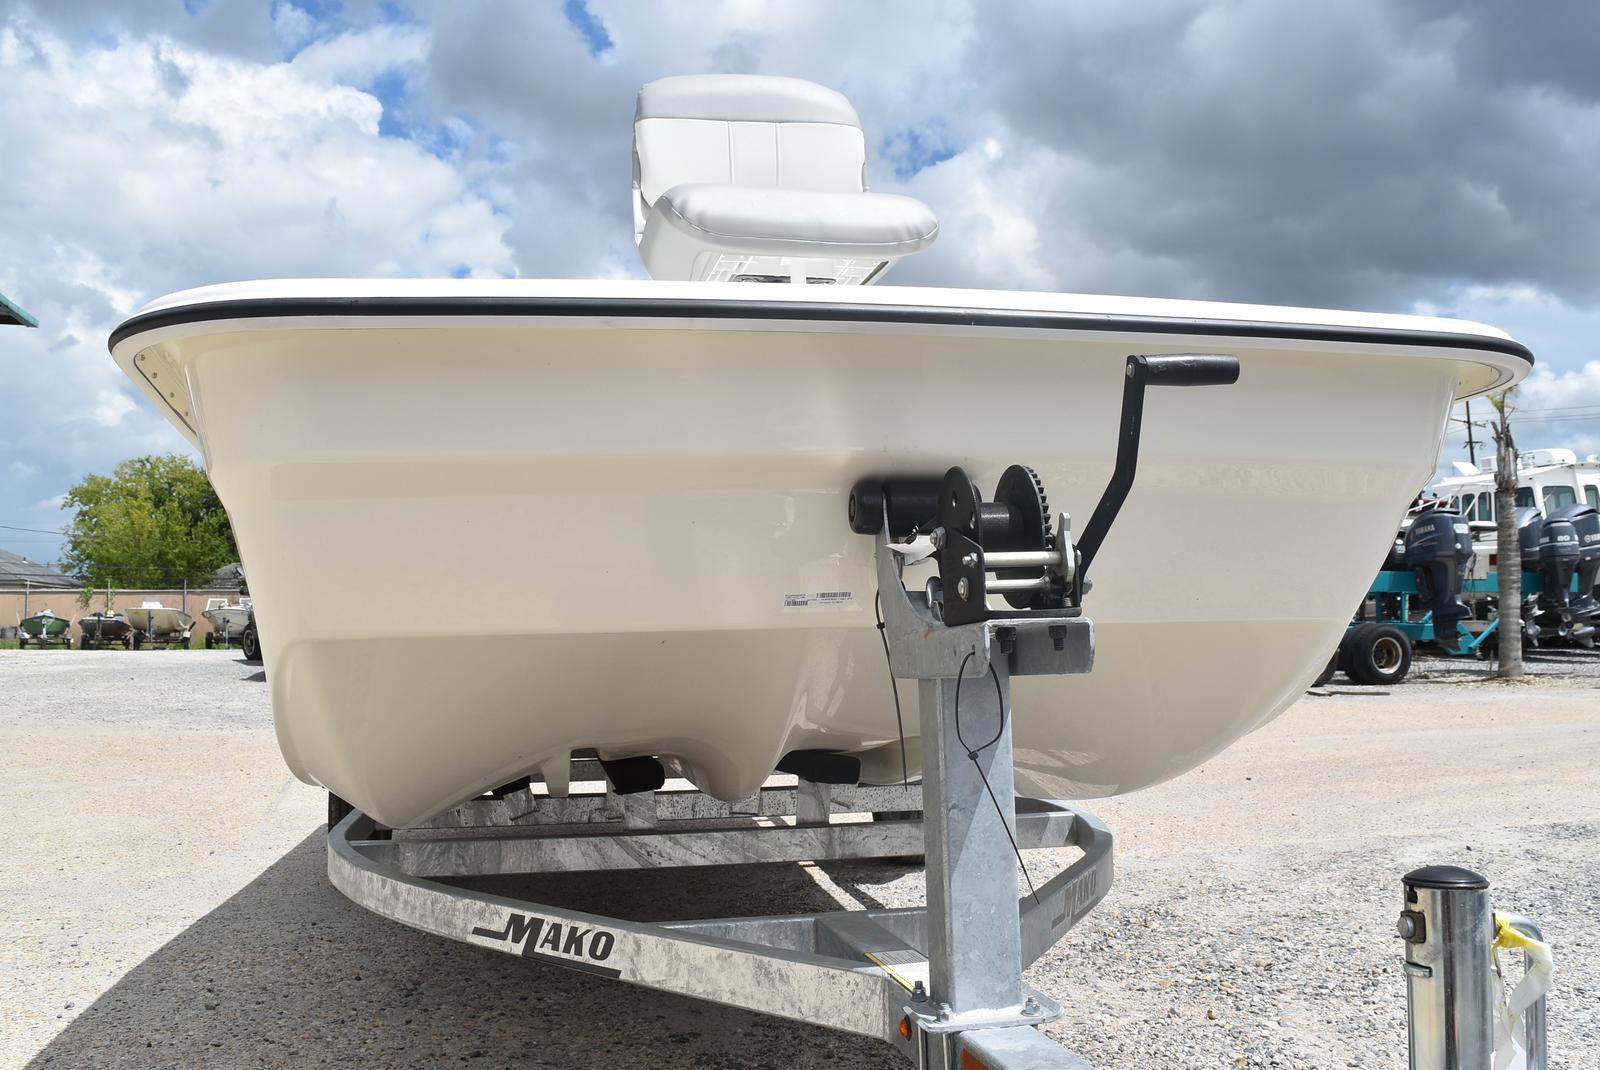 2020 Mako boat for sale, model of the boat is Pro Skiff 17, 75 ELPT & Image # 388 of 702